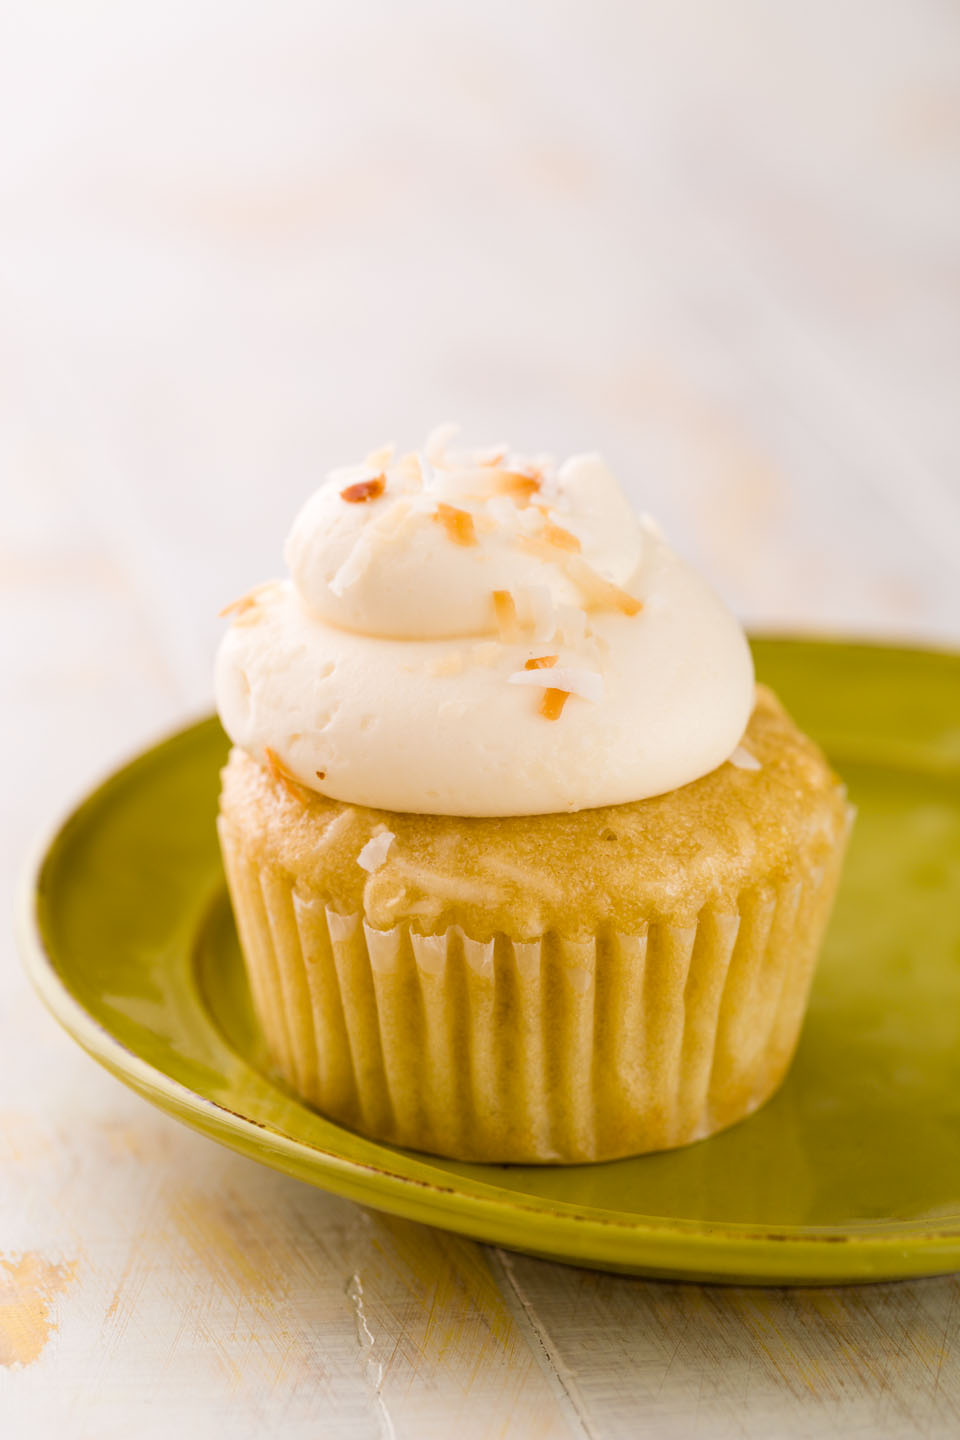 Vegan coconut cupcake from Whole Foods